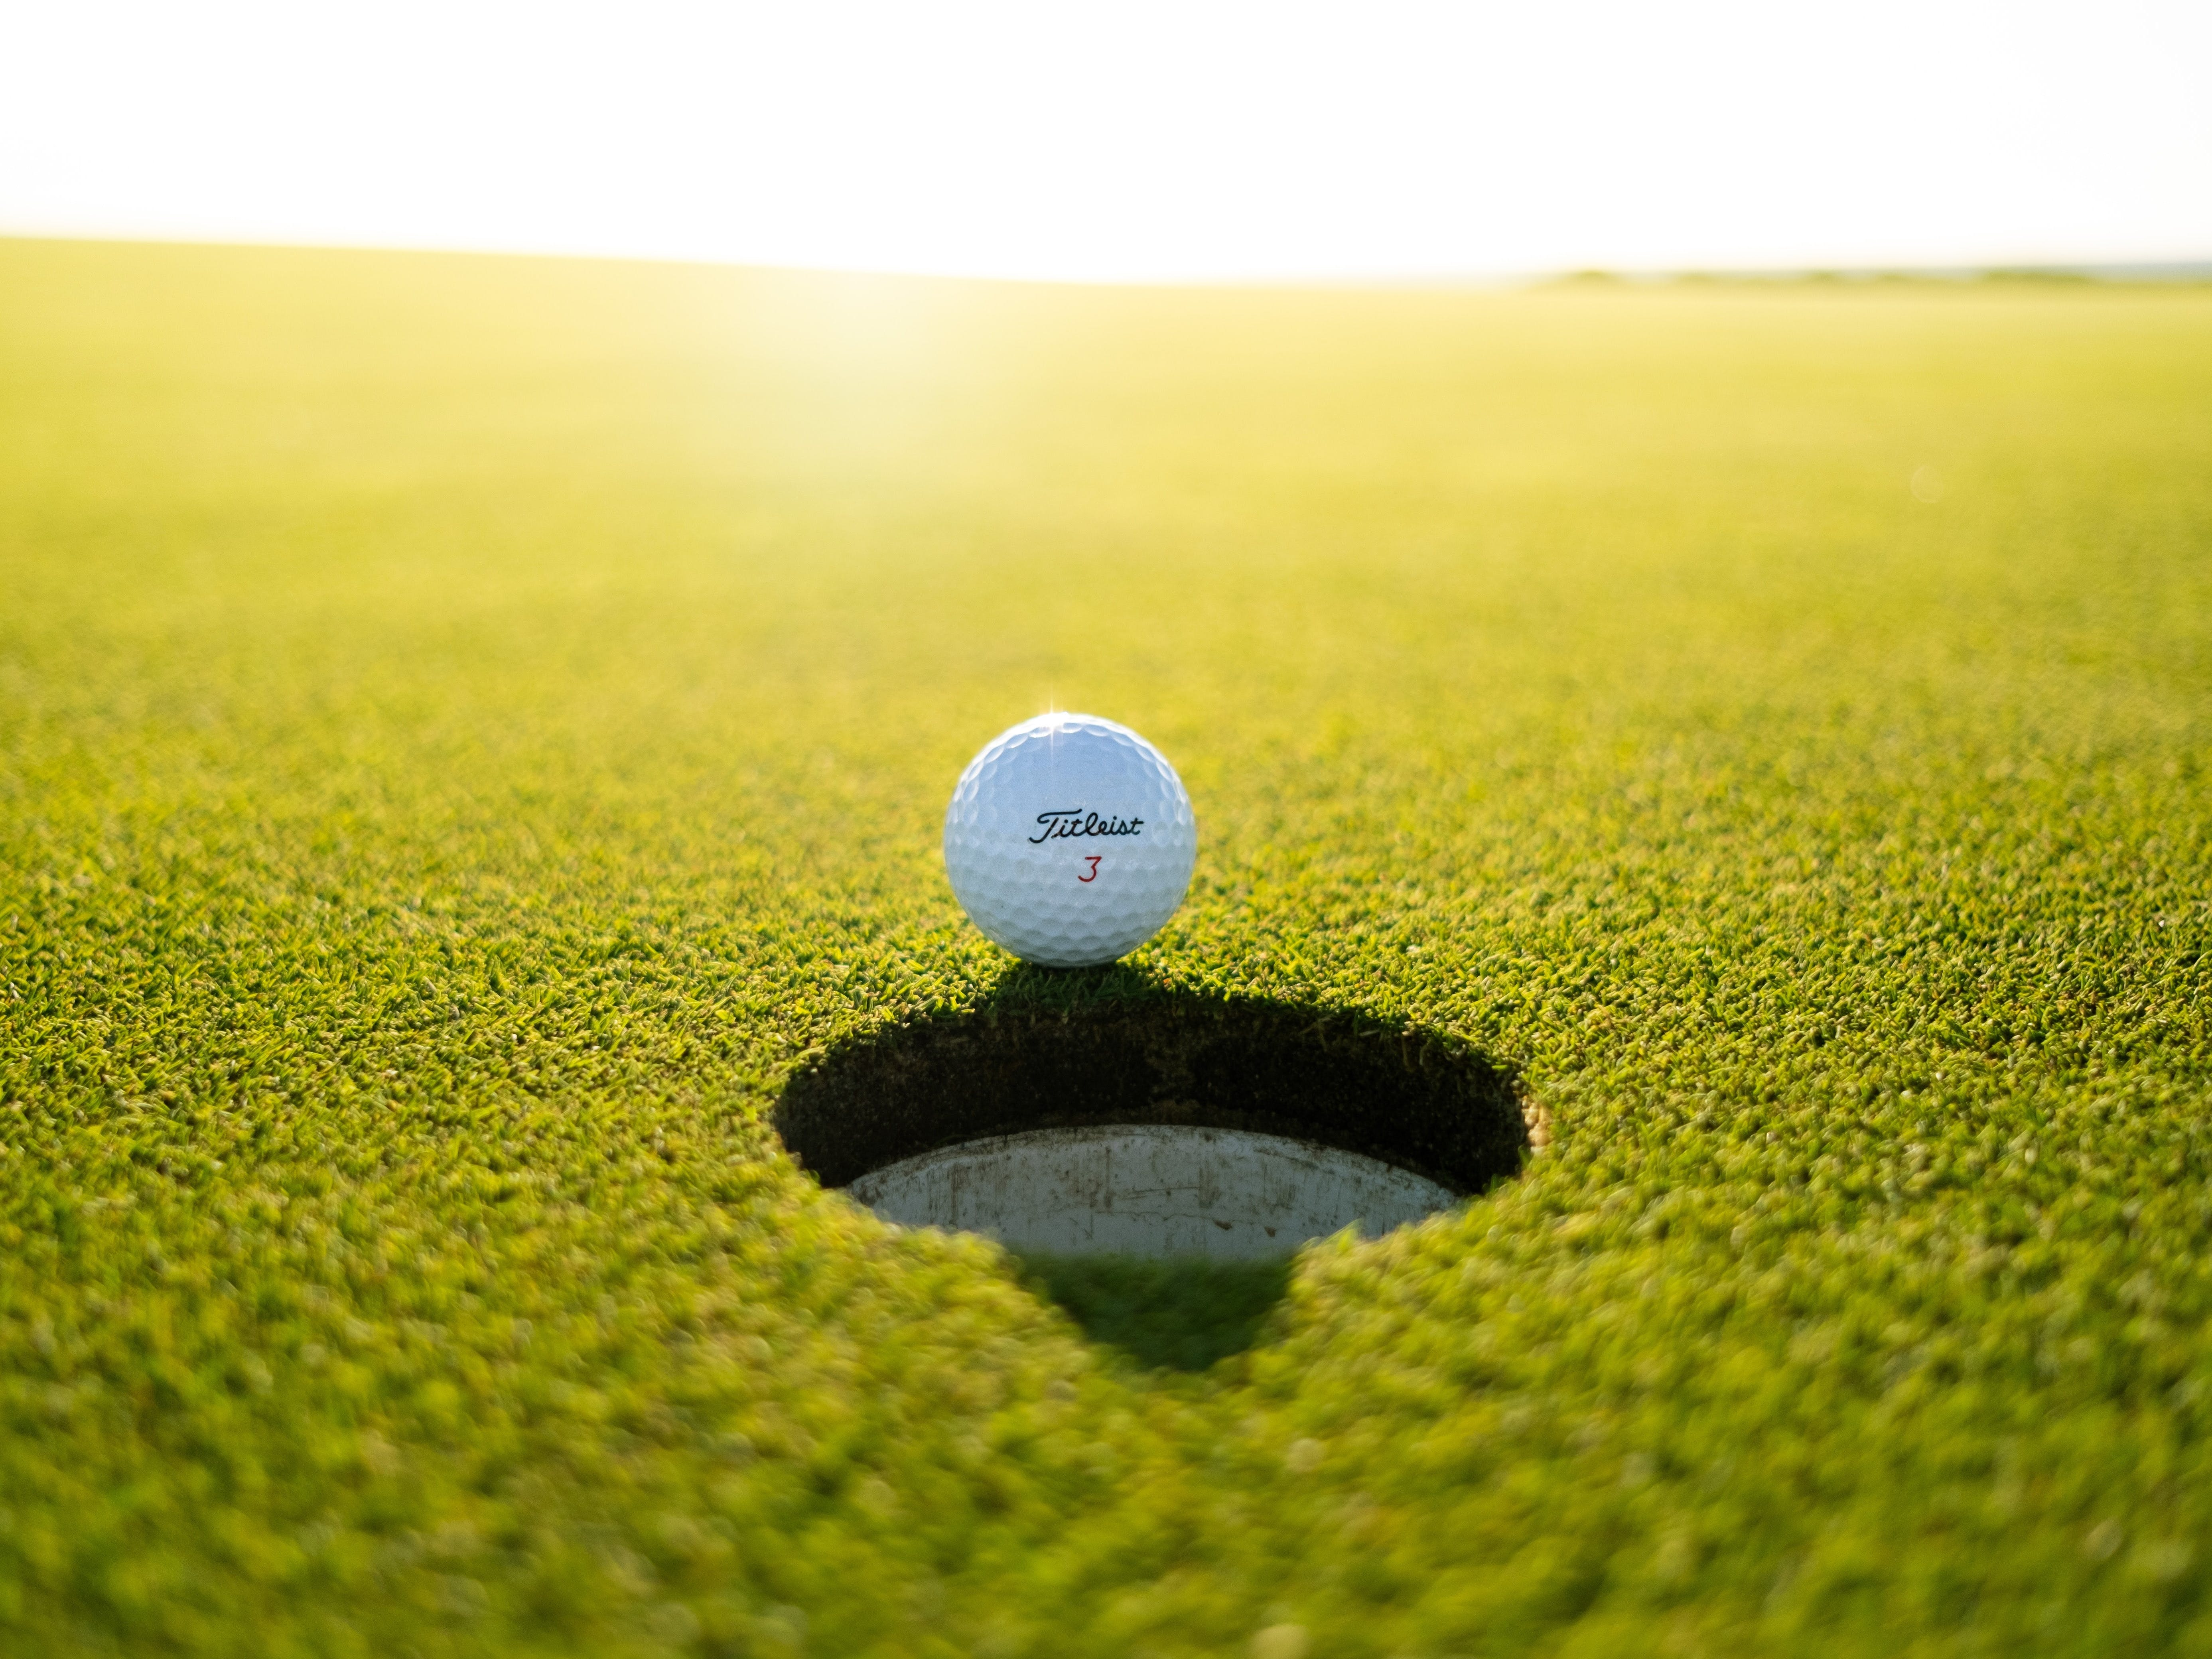 A golf ball teeters on the edge of a hole